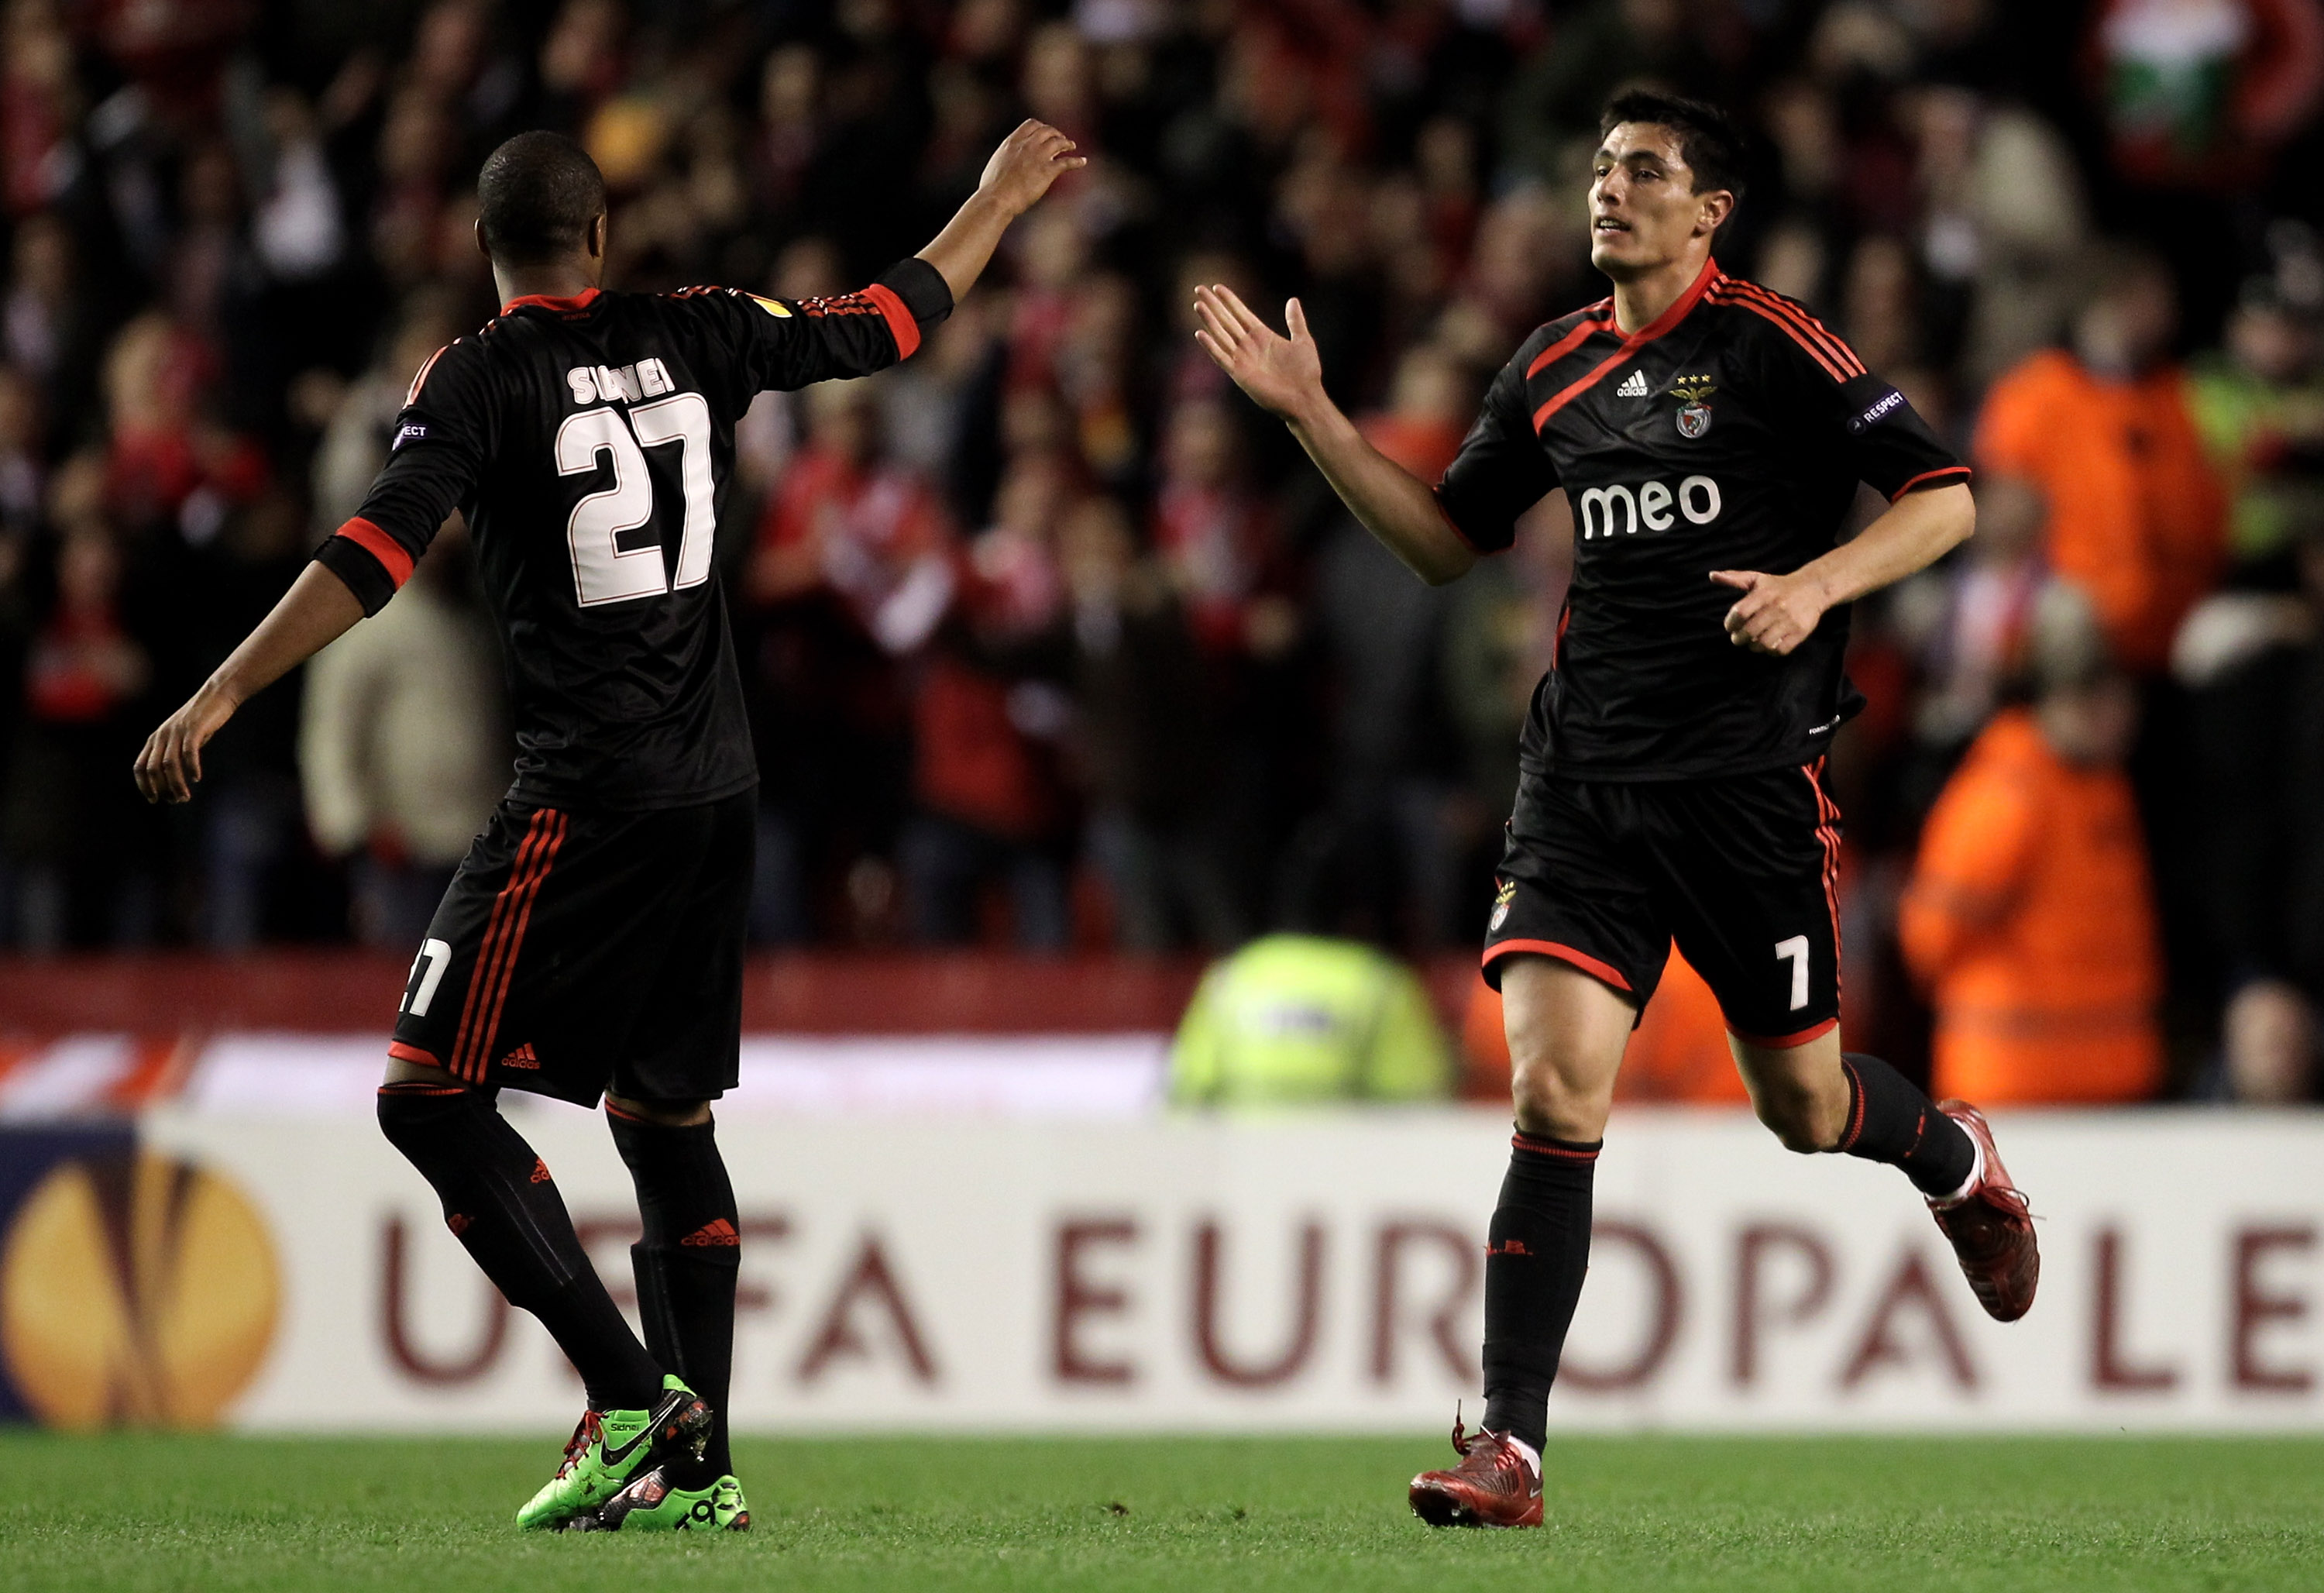 LIVERPOOL, ENGLAND - APRIL 08:  Oscar Cardozo of Benfica celebrates scoring his team's first goal with team mate Sidnei (L) during the UEFA Europa League Quarter Final second leg match between Liverpool and Benfica at Anfield on April 8, 2010 in Liverpool